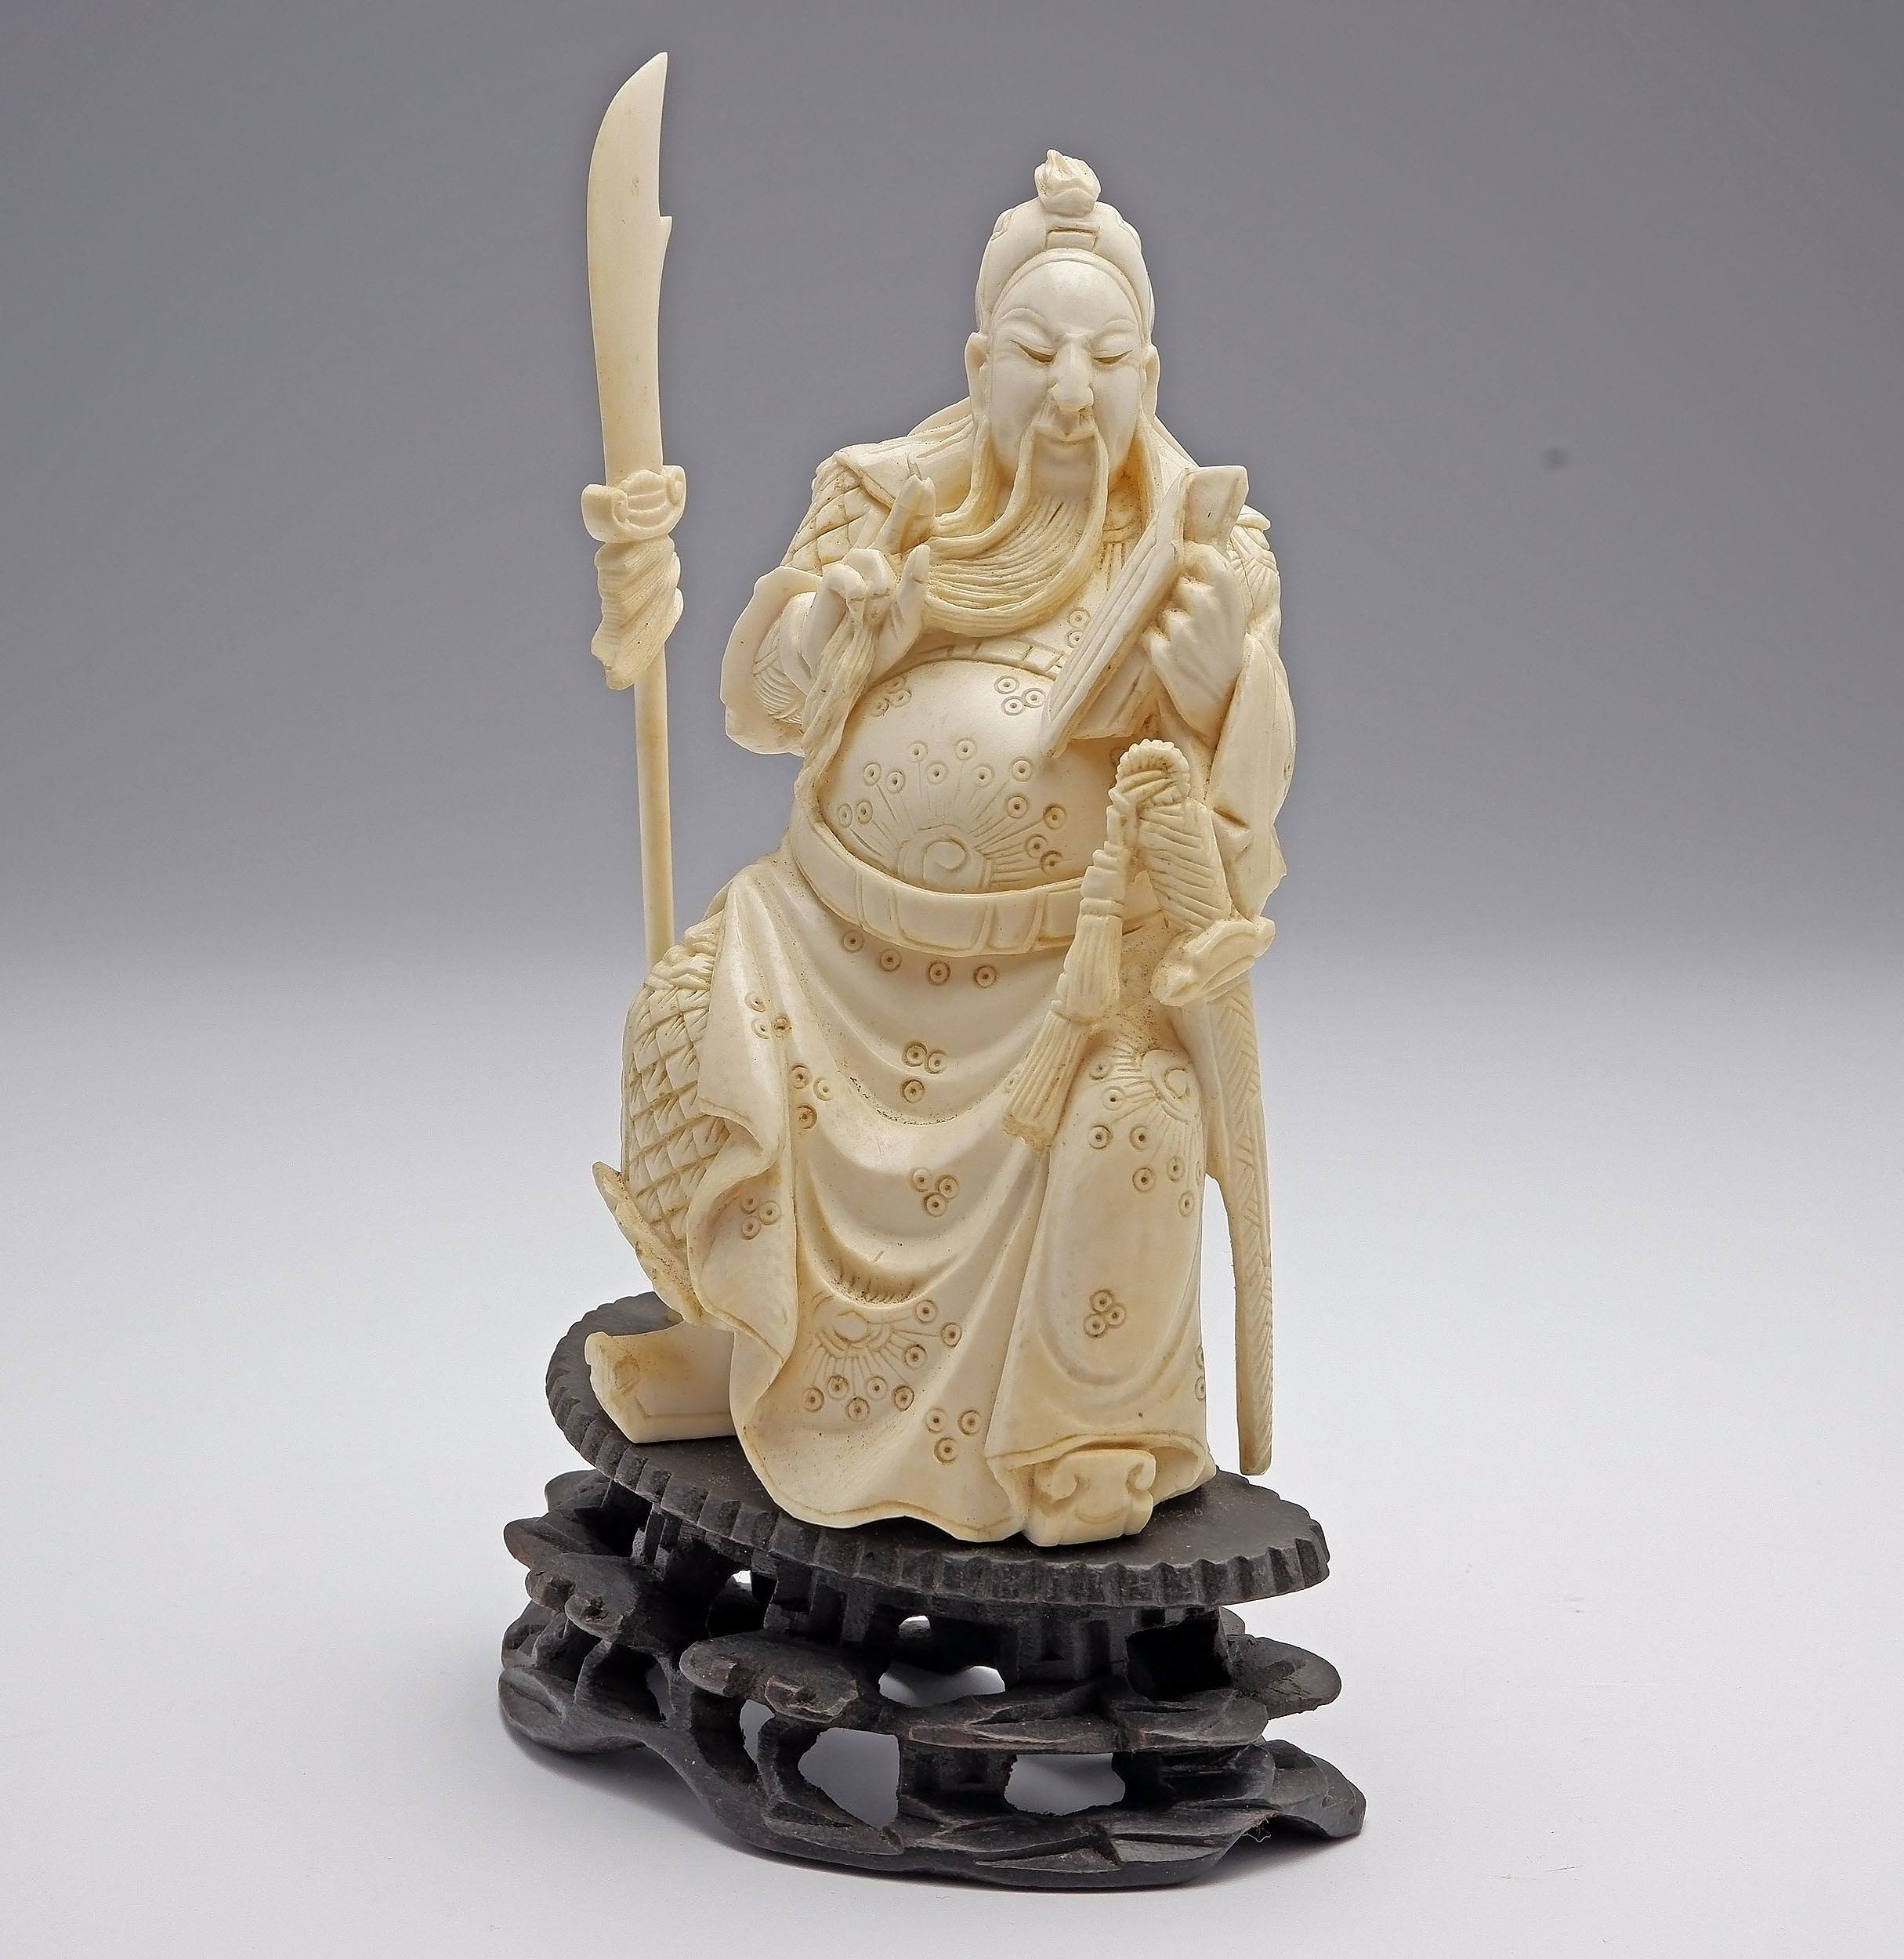 'Chinese Carved Ivory Model of a Warrior on Hardwood Stand, Early to Mid 20th Century'